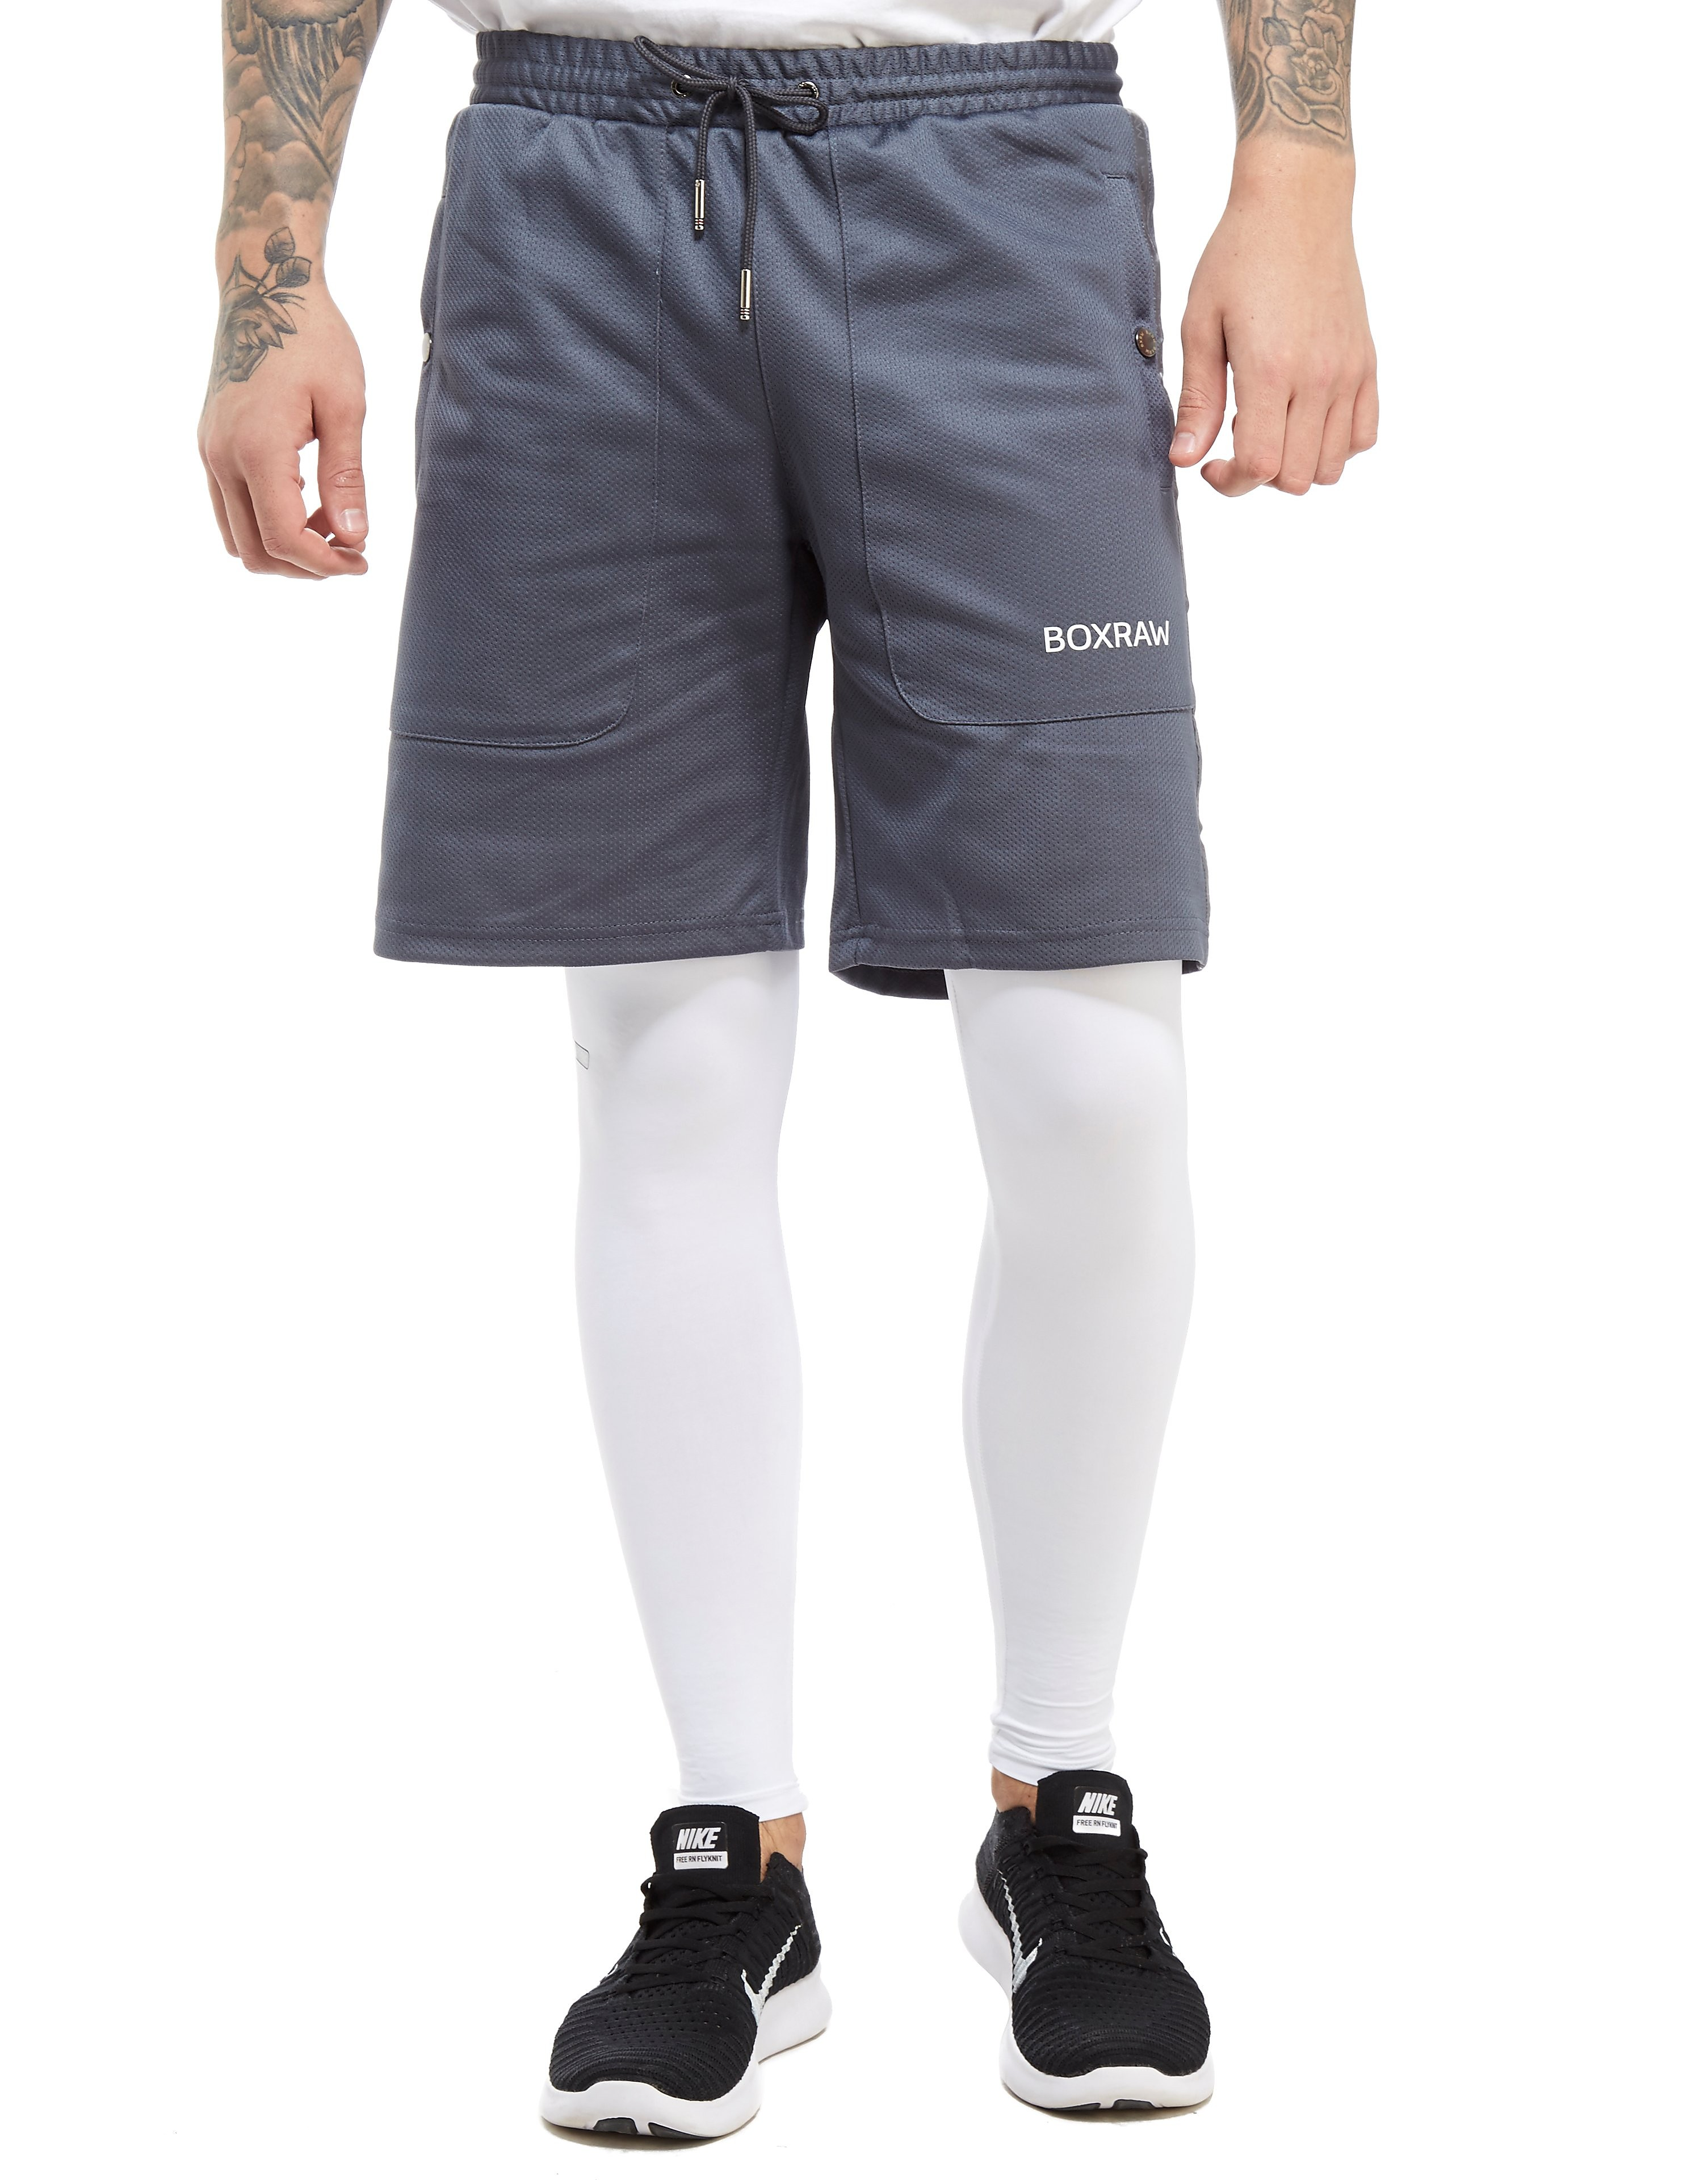 BOXRAW Pep Shorts (2-in-1 Training Tights) Homme